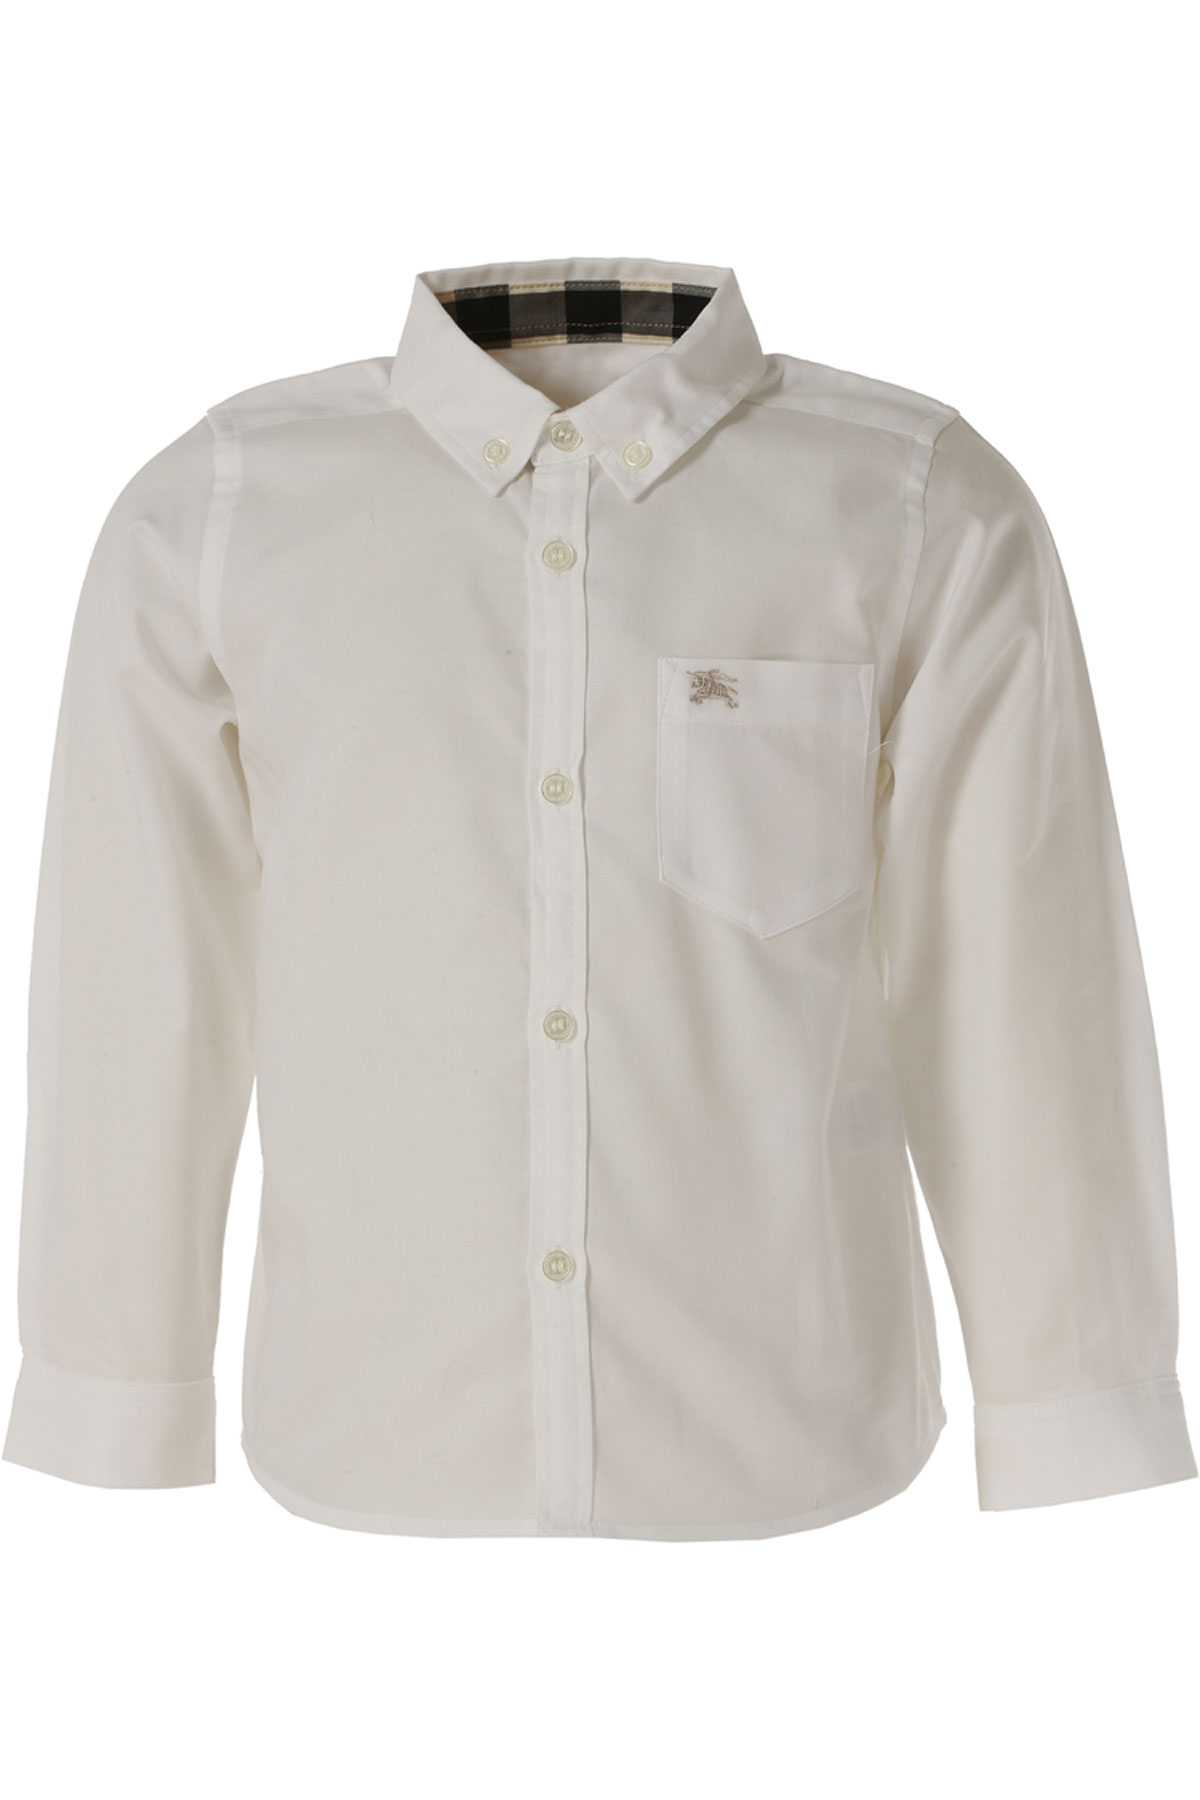 Image of Burberry Kids Shirts for Boys On Sale in Outlet, White, Cotton, 2017, 4Y 6Y